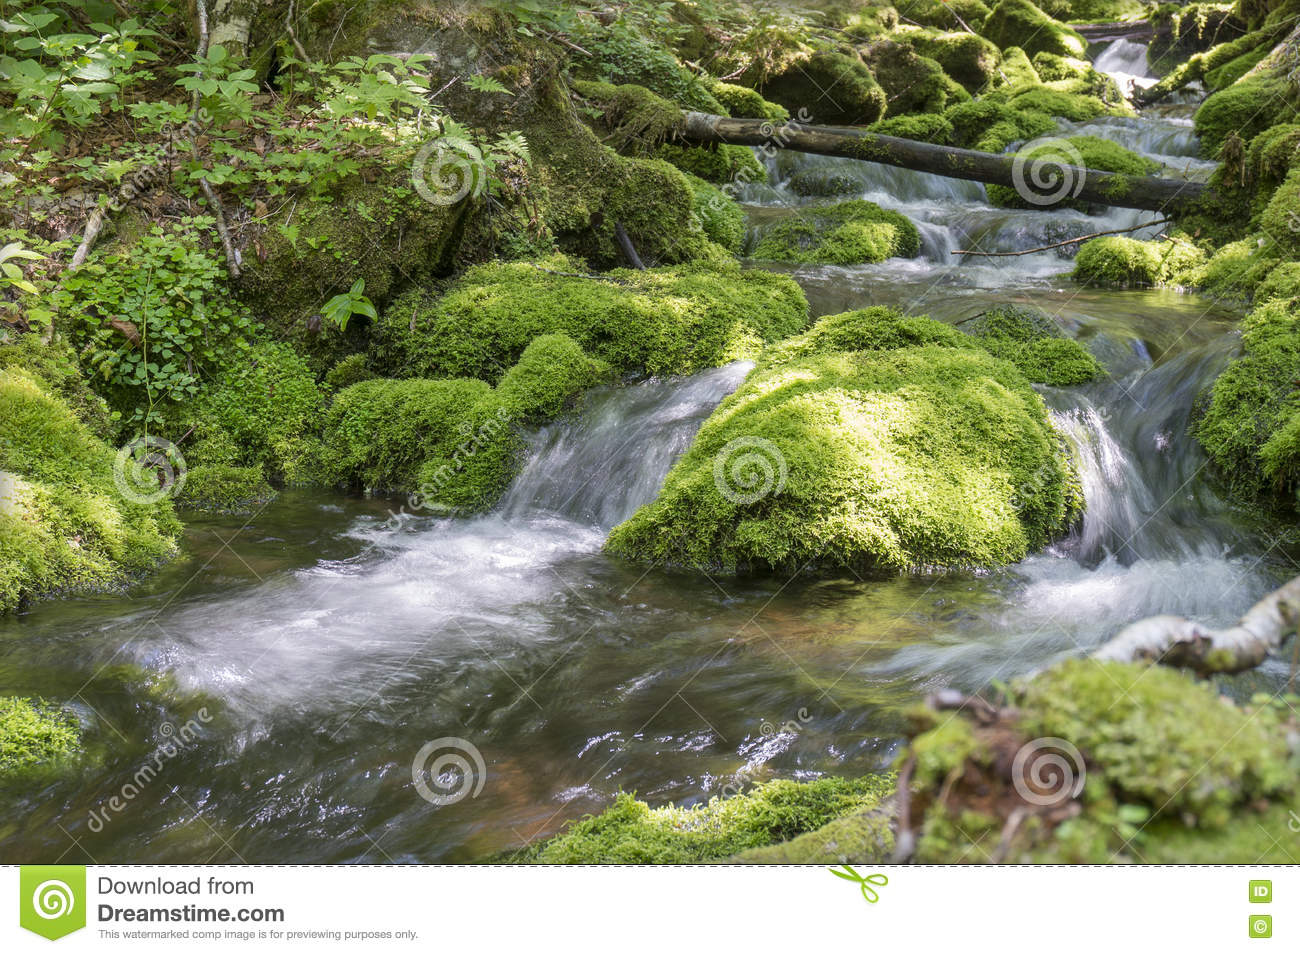 Moss covered stones in a brook in the Mount Carleton, New Brunswick, Canada